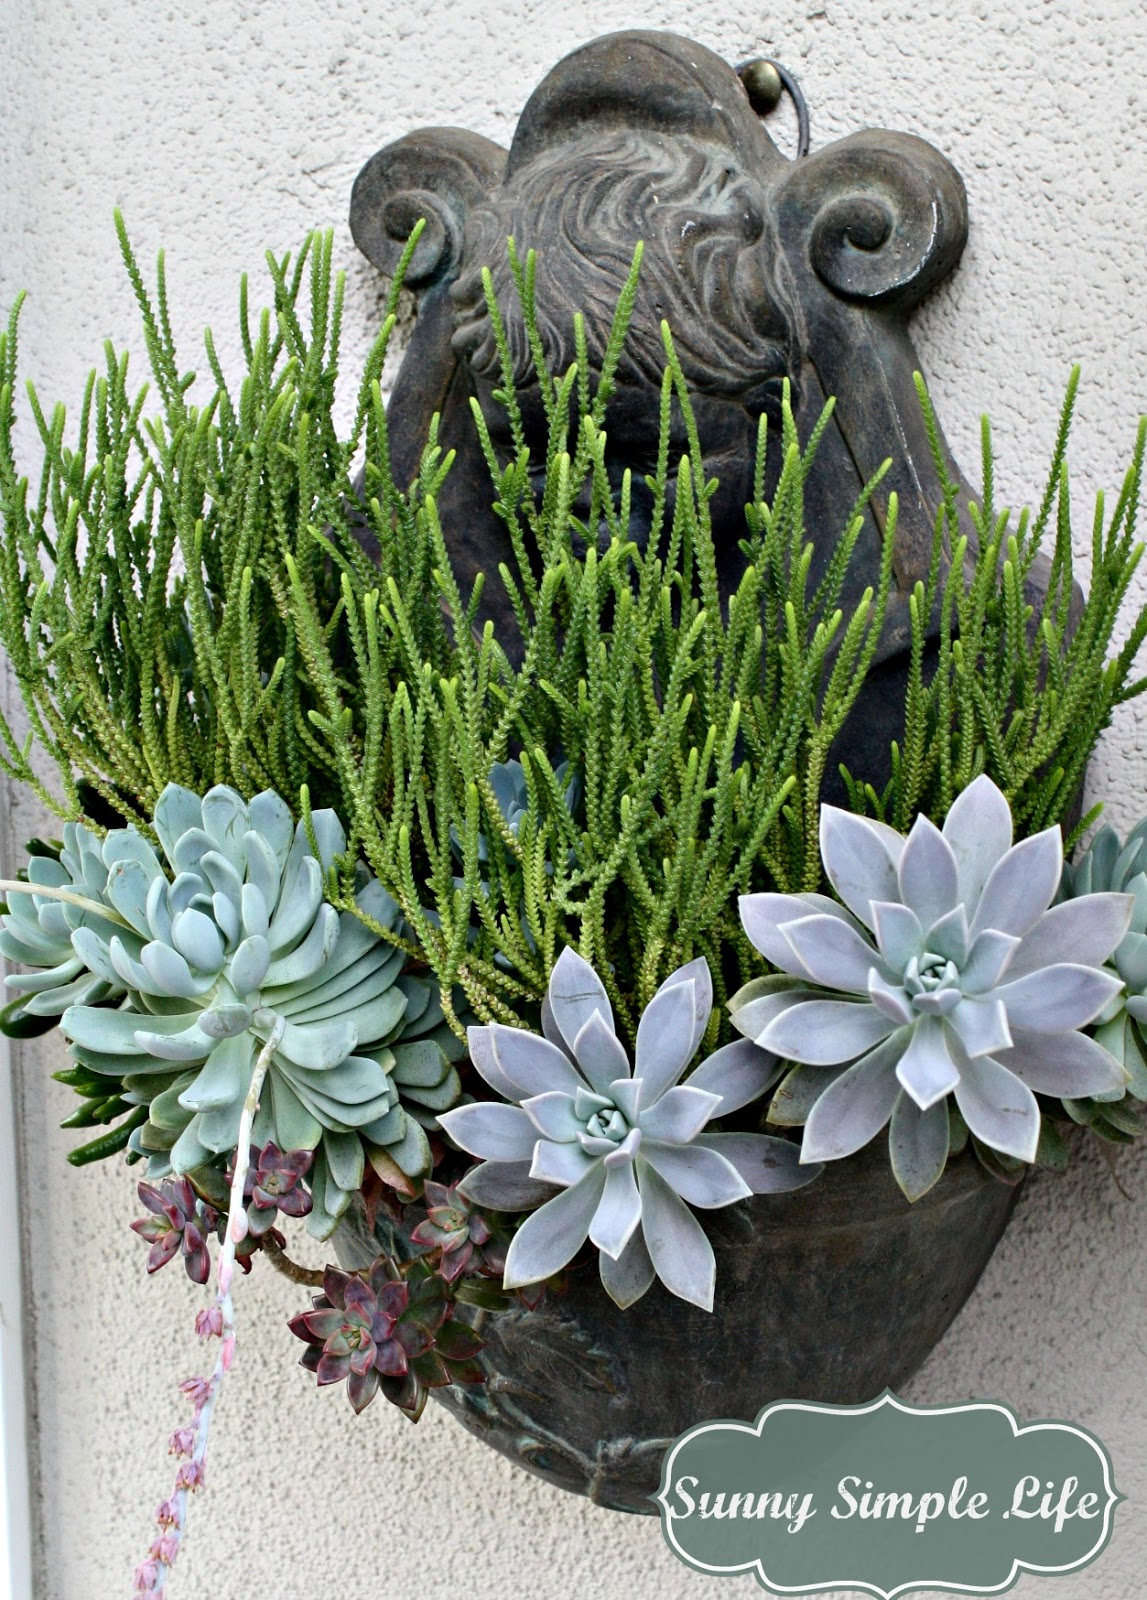 Sunny Simple Life: How to Grow Succulents